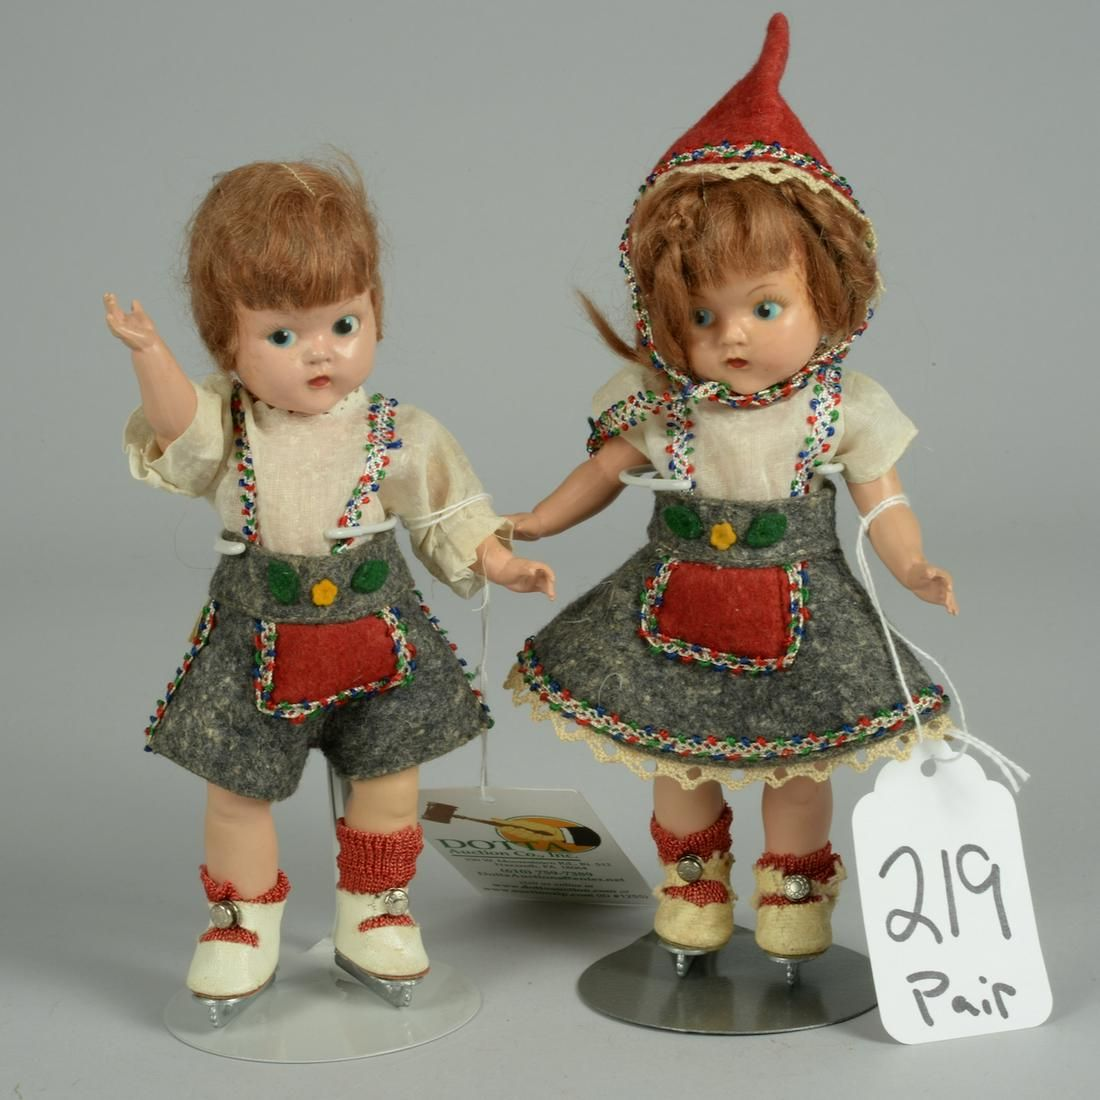 VOGUE GINNY BOY AND GIRL PAIR WITH ICE SKATES 8 IN